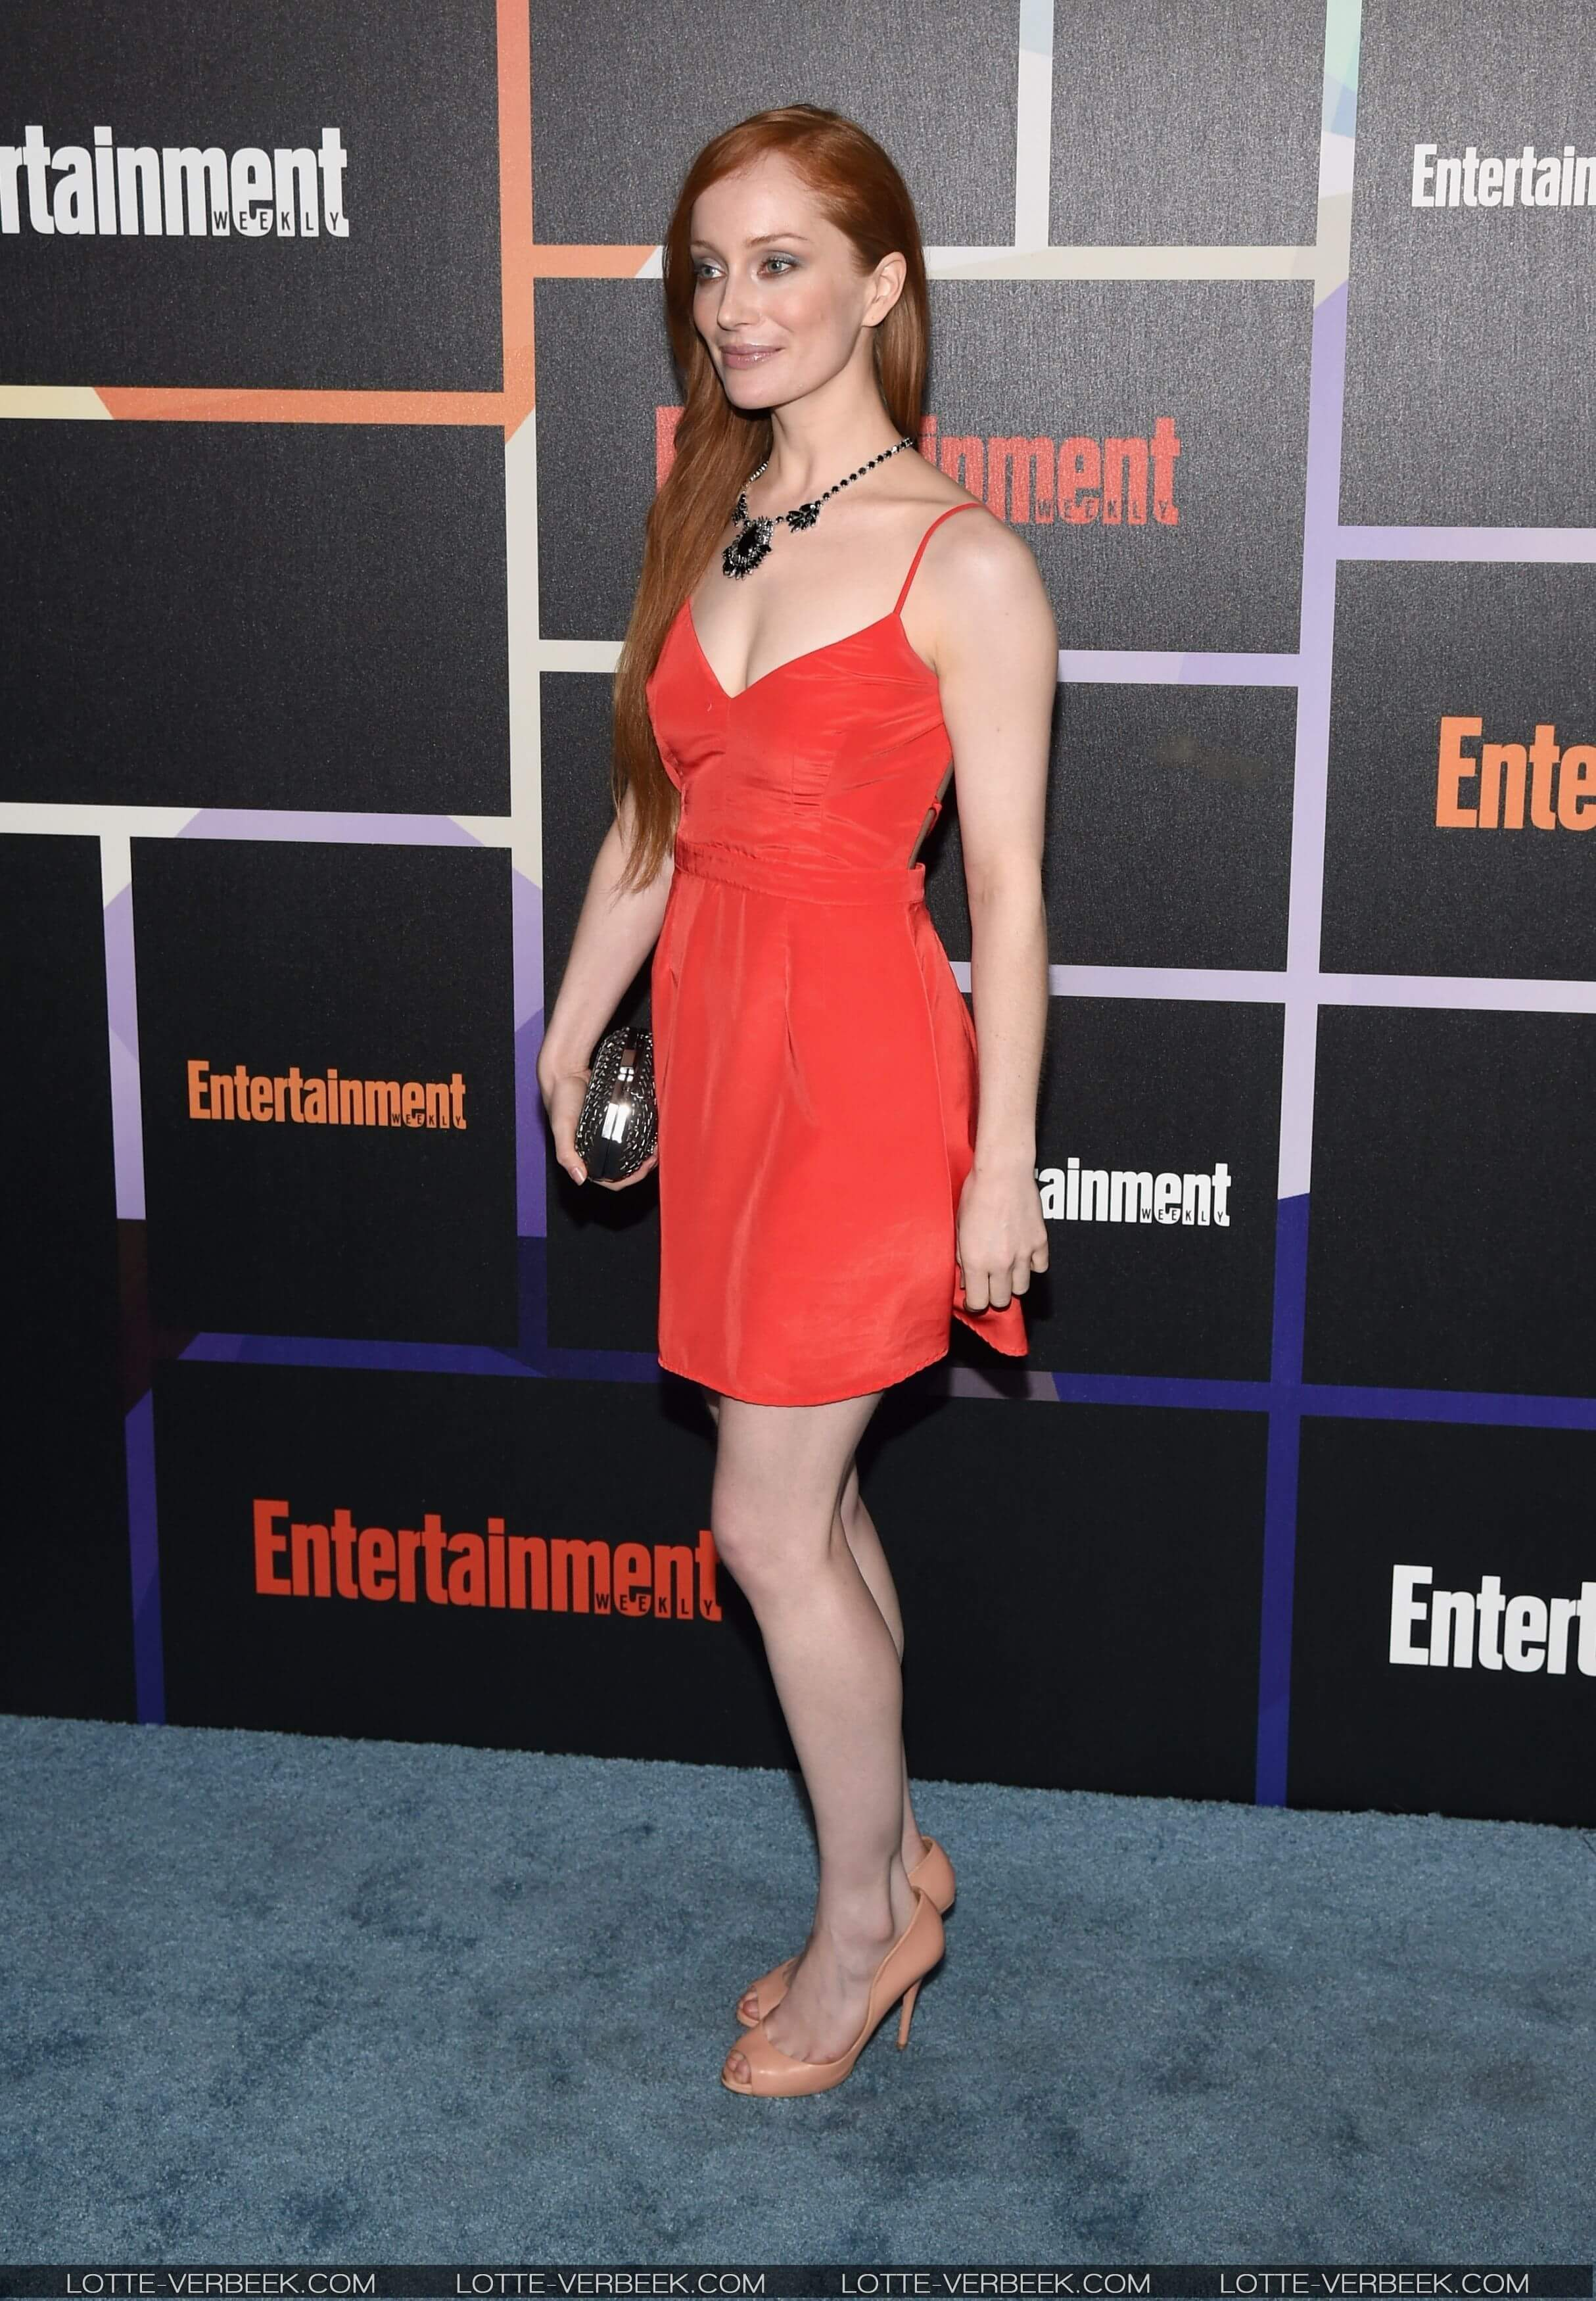 Andrea Osvárt Sexy 49 hot pictures of lotte verbeek which are really a sexy